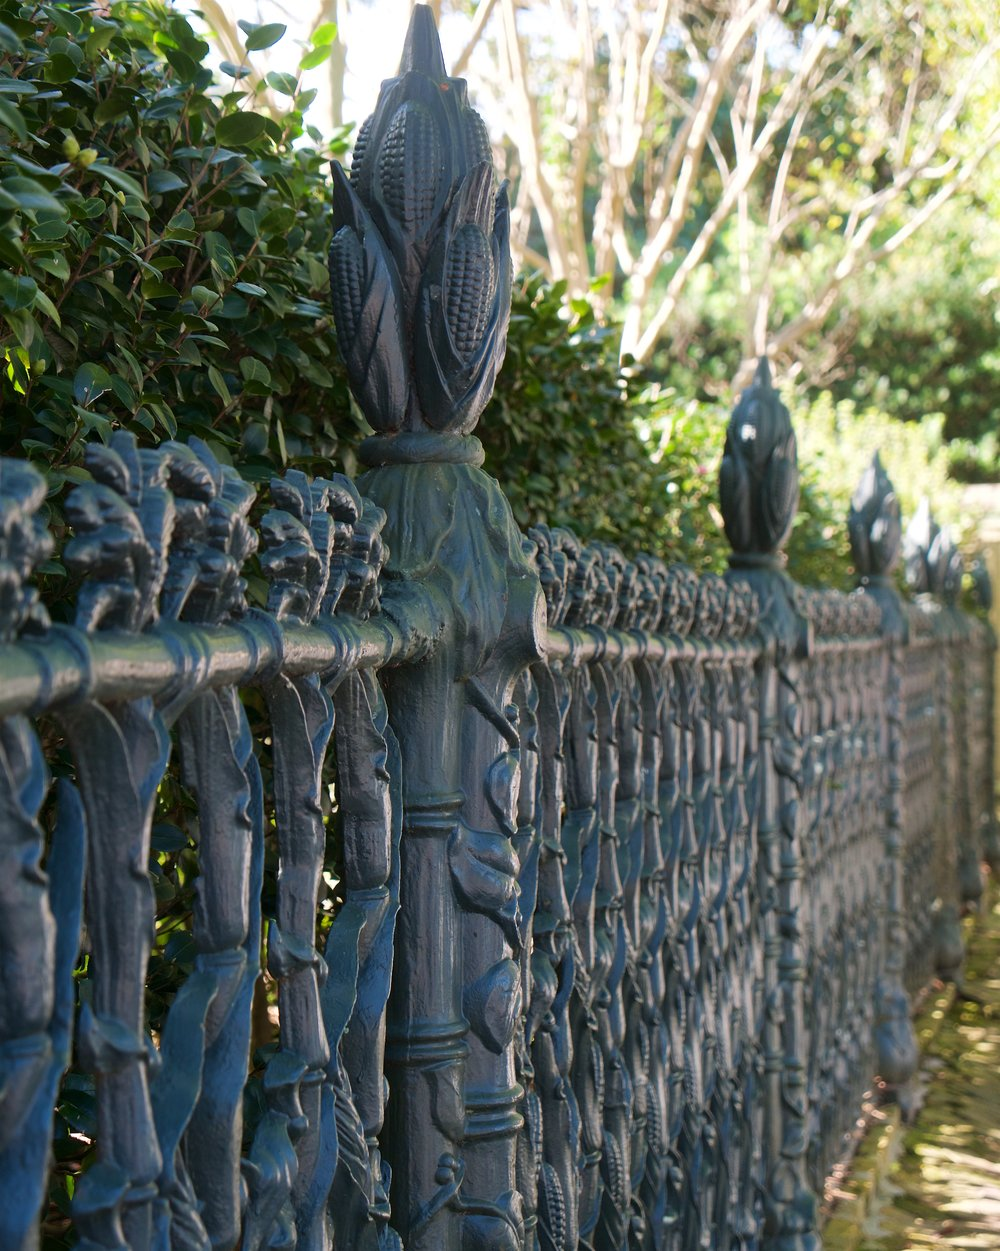 Corn stalk fence